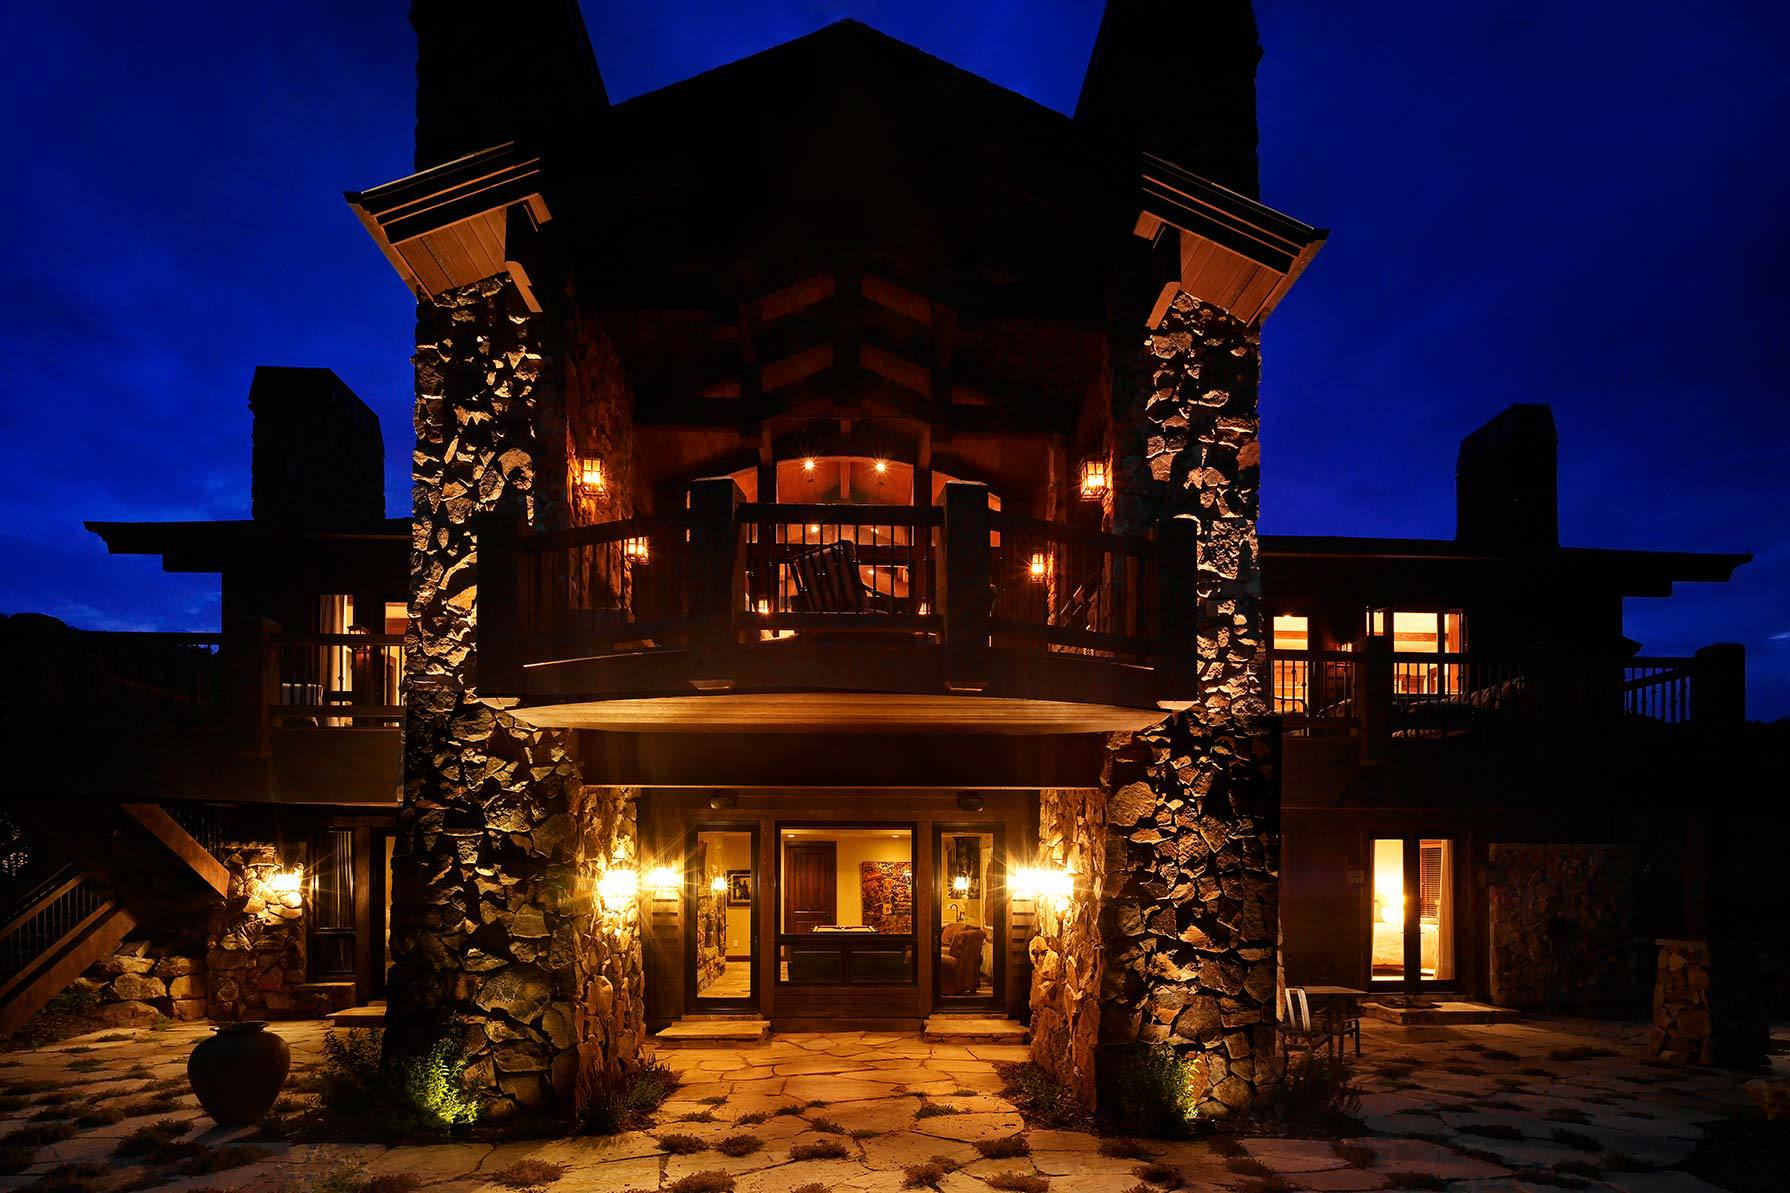 Outdoor Residential Security Lighting Ideas and